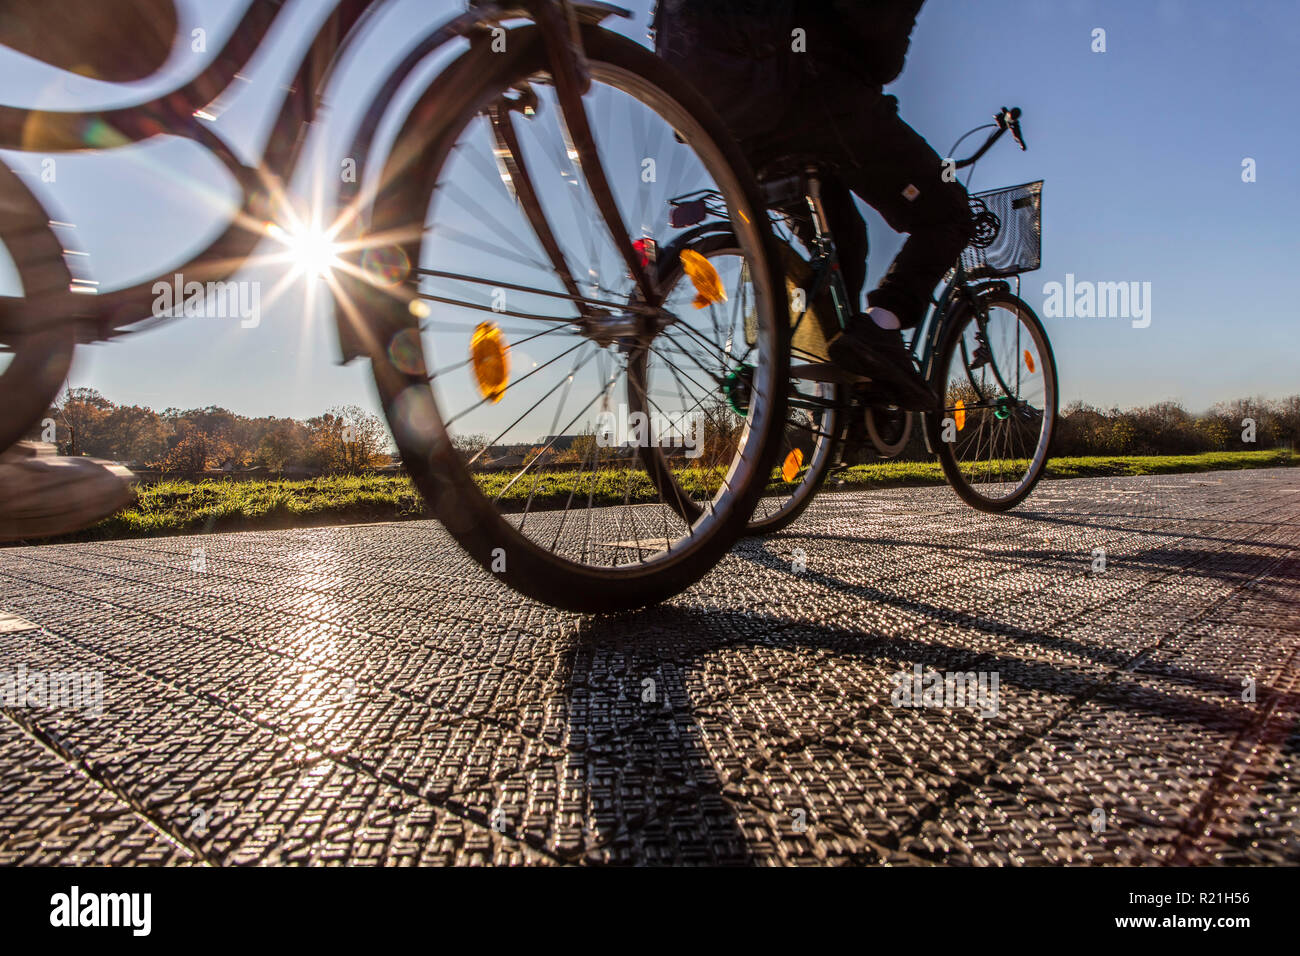 First solar cycle path in Germany, in Erftstadt, a 90 meter long test track with solar modules on the ground, that produce electricity - Stock Image